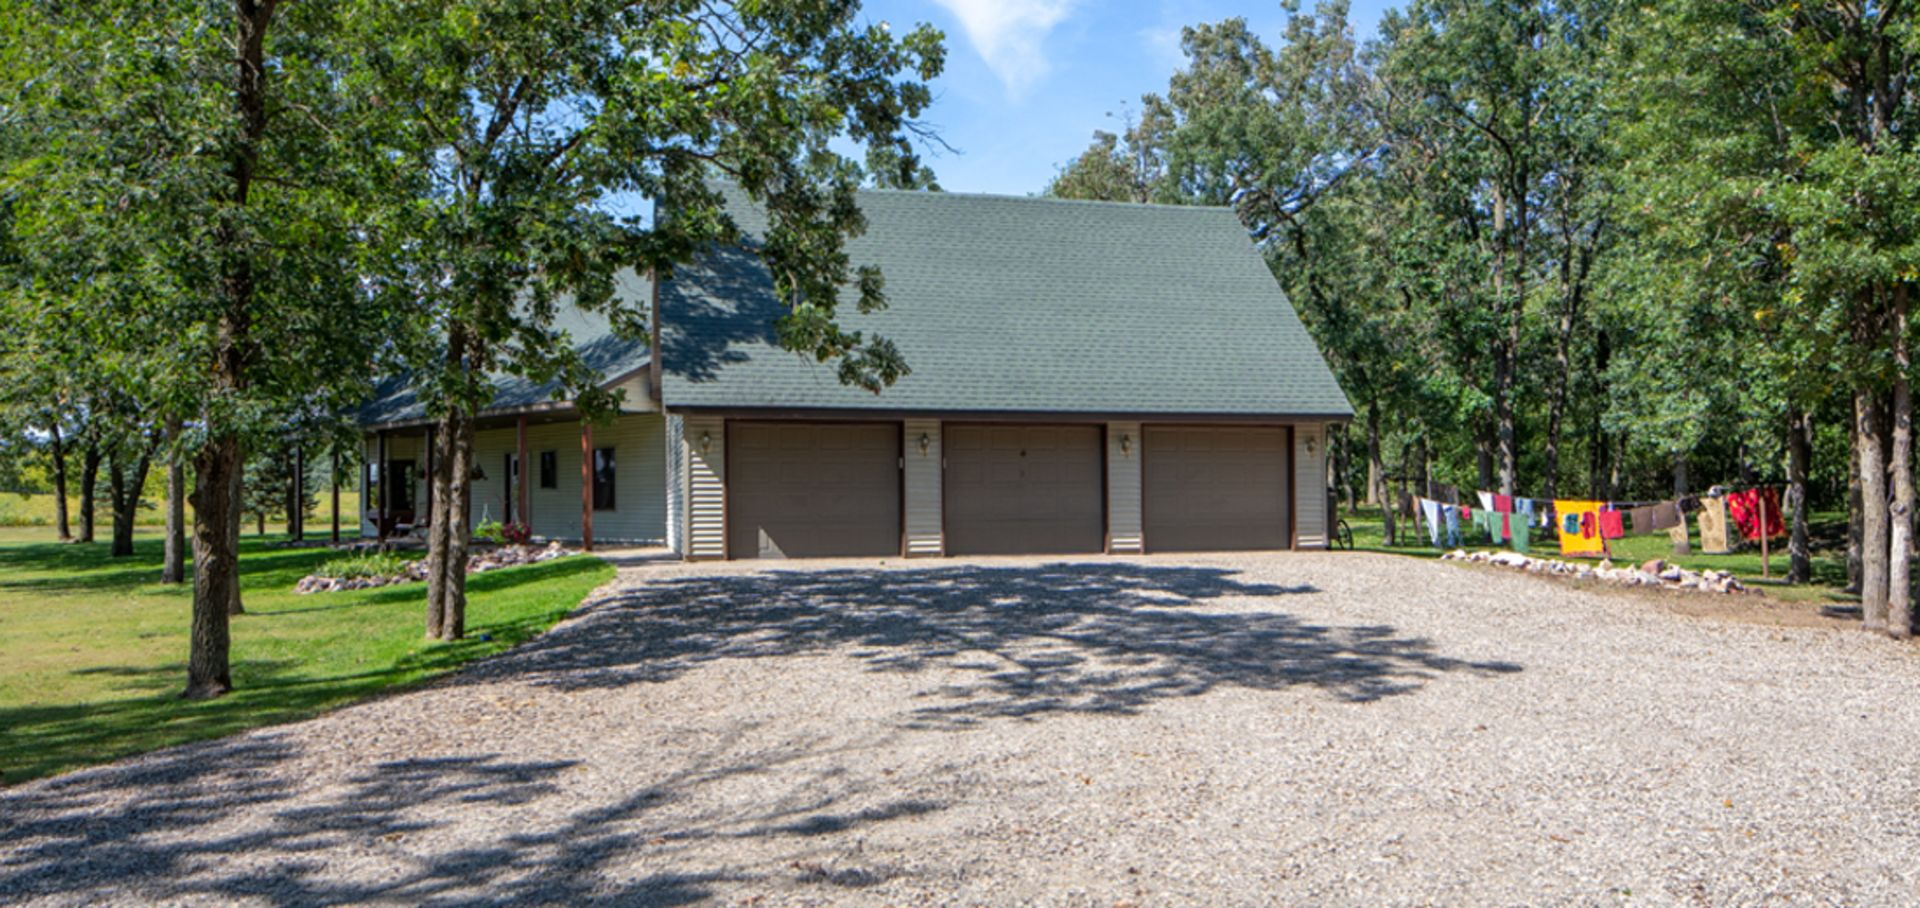 Private and Quiet Cambridge Home with Great Backyard